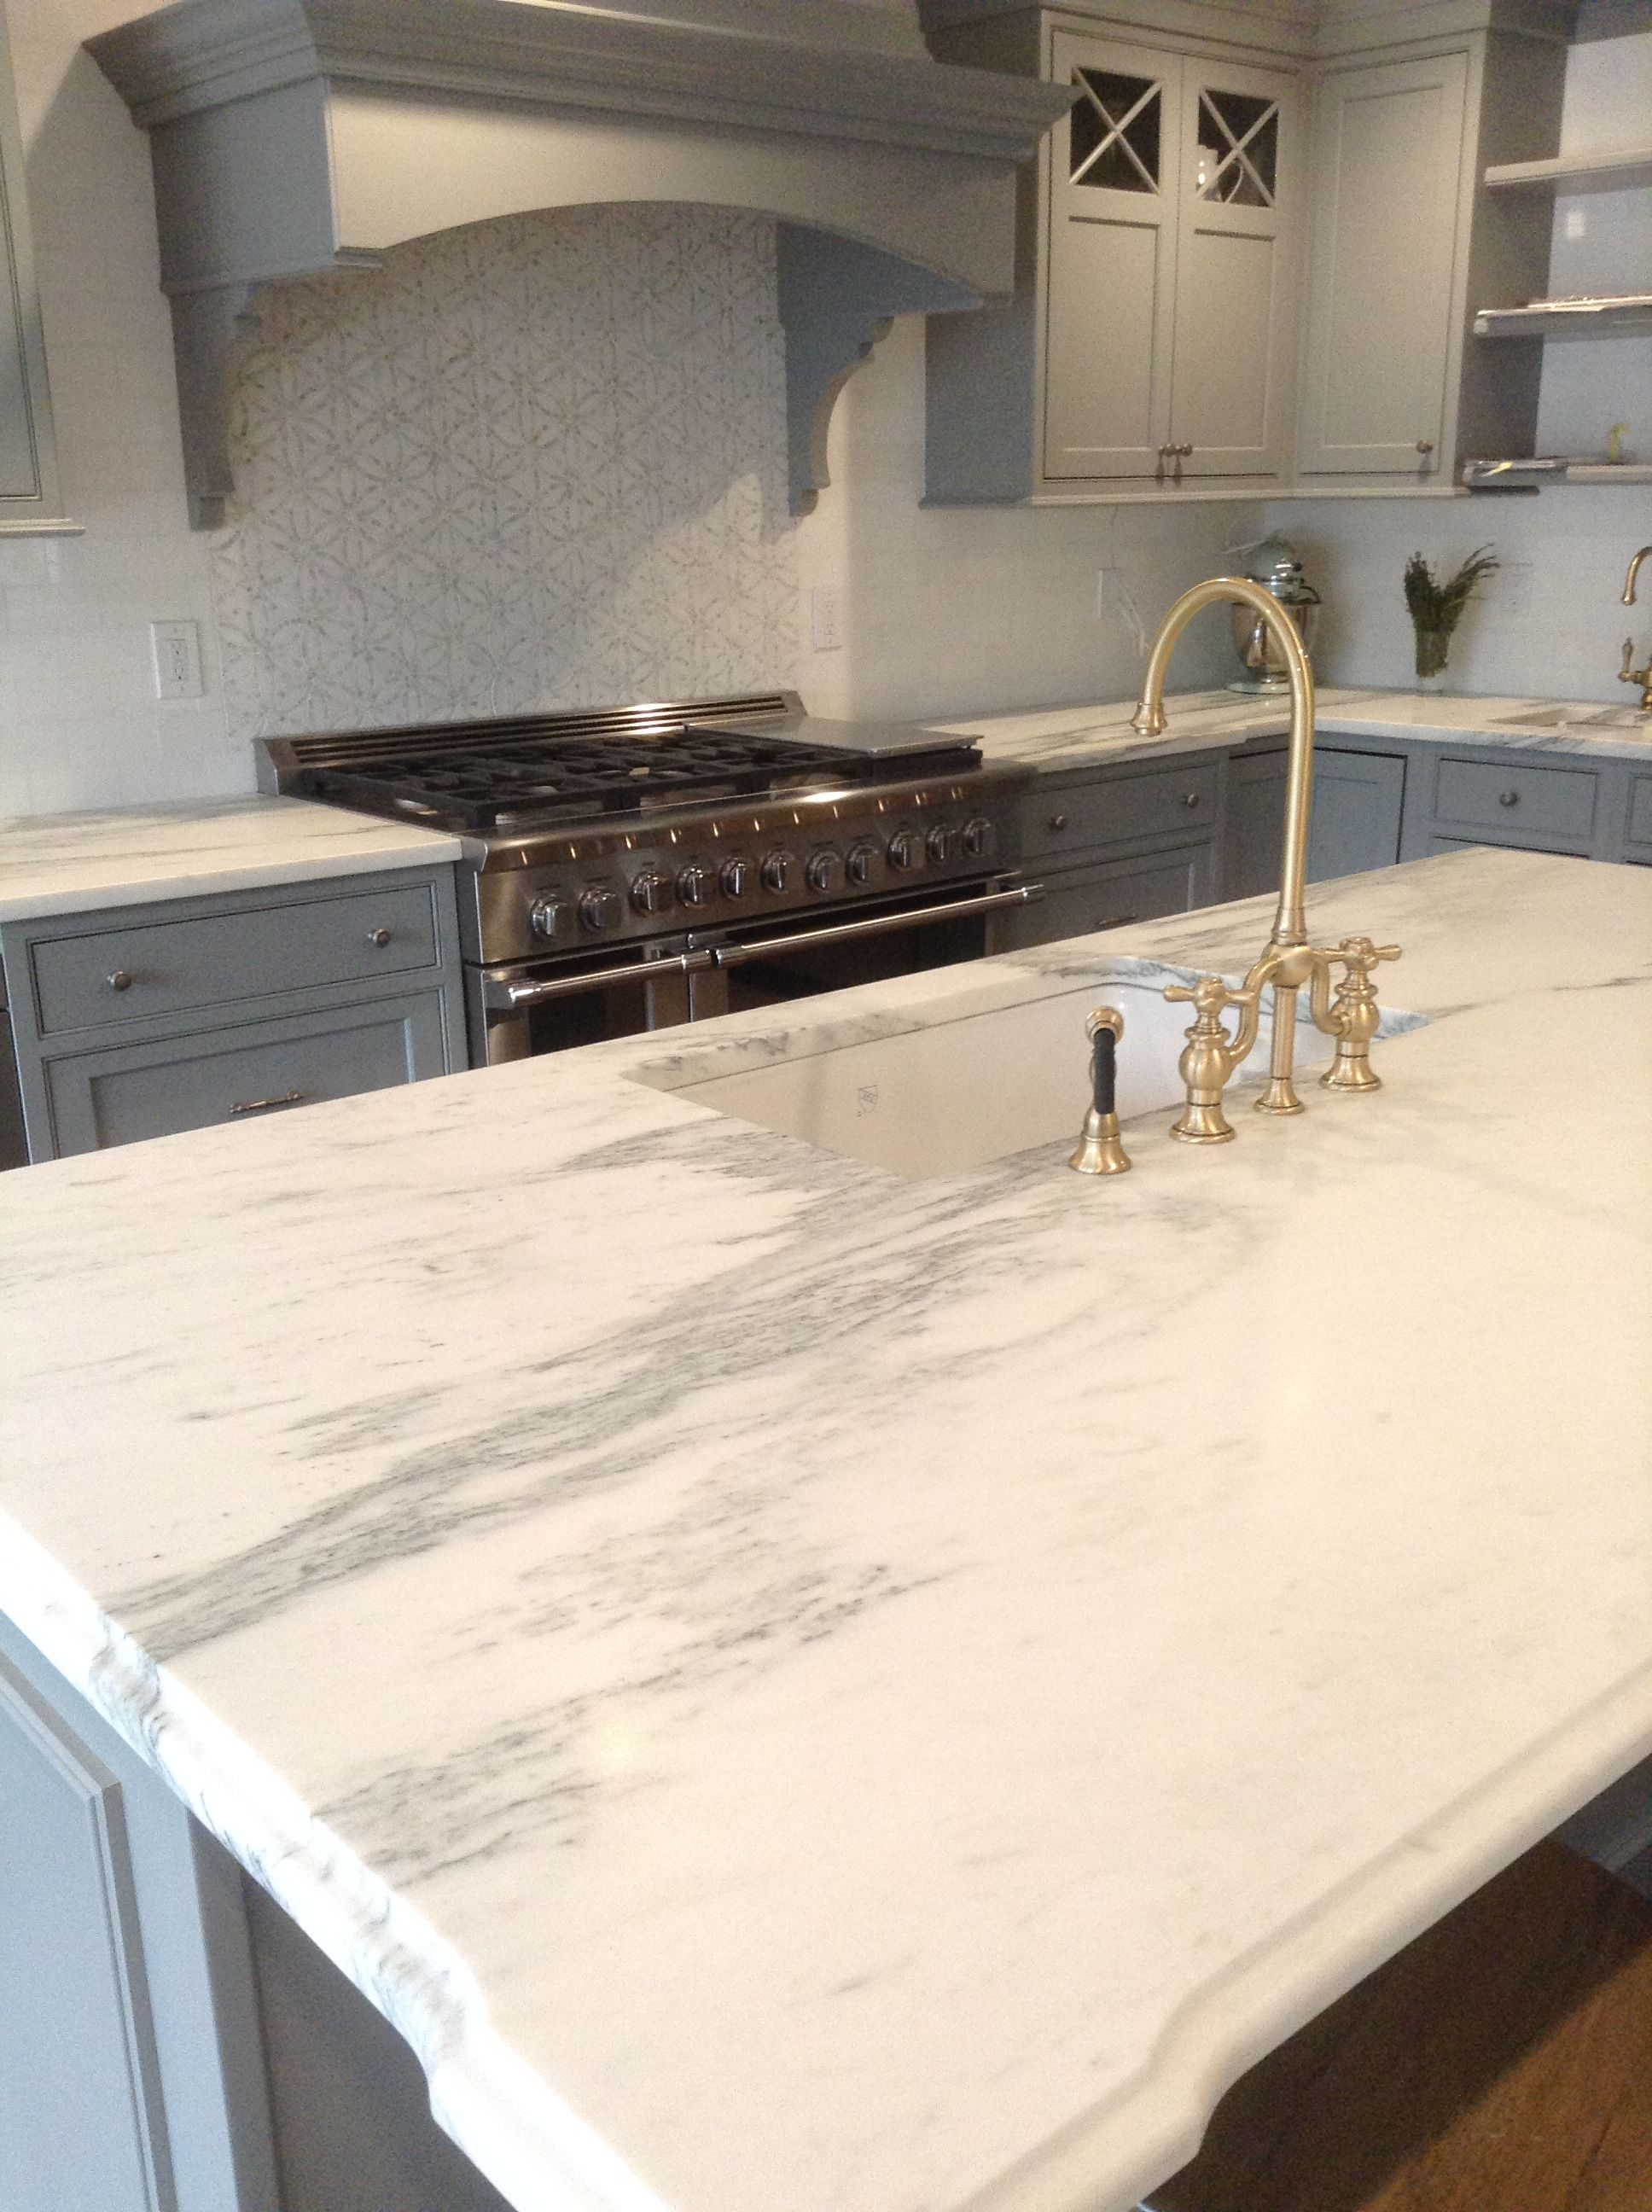 cabinets quartz most honed expensive carrara countertops solid finish carrera look full white kitchen surface slab black new size that of shocking like marble cost countertop top